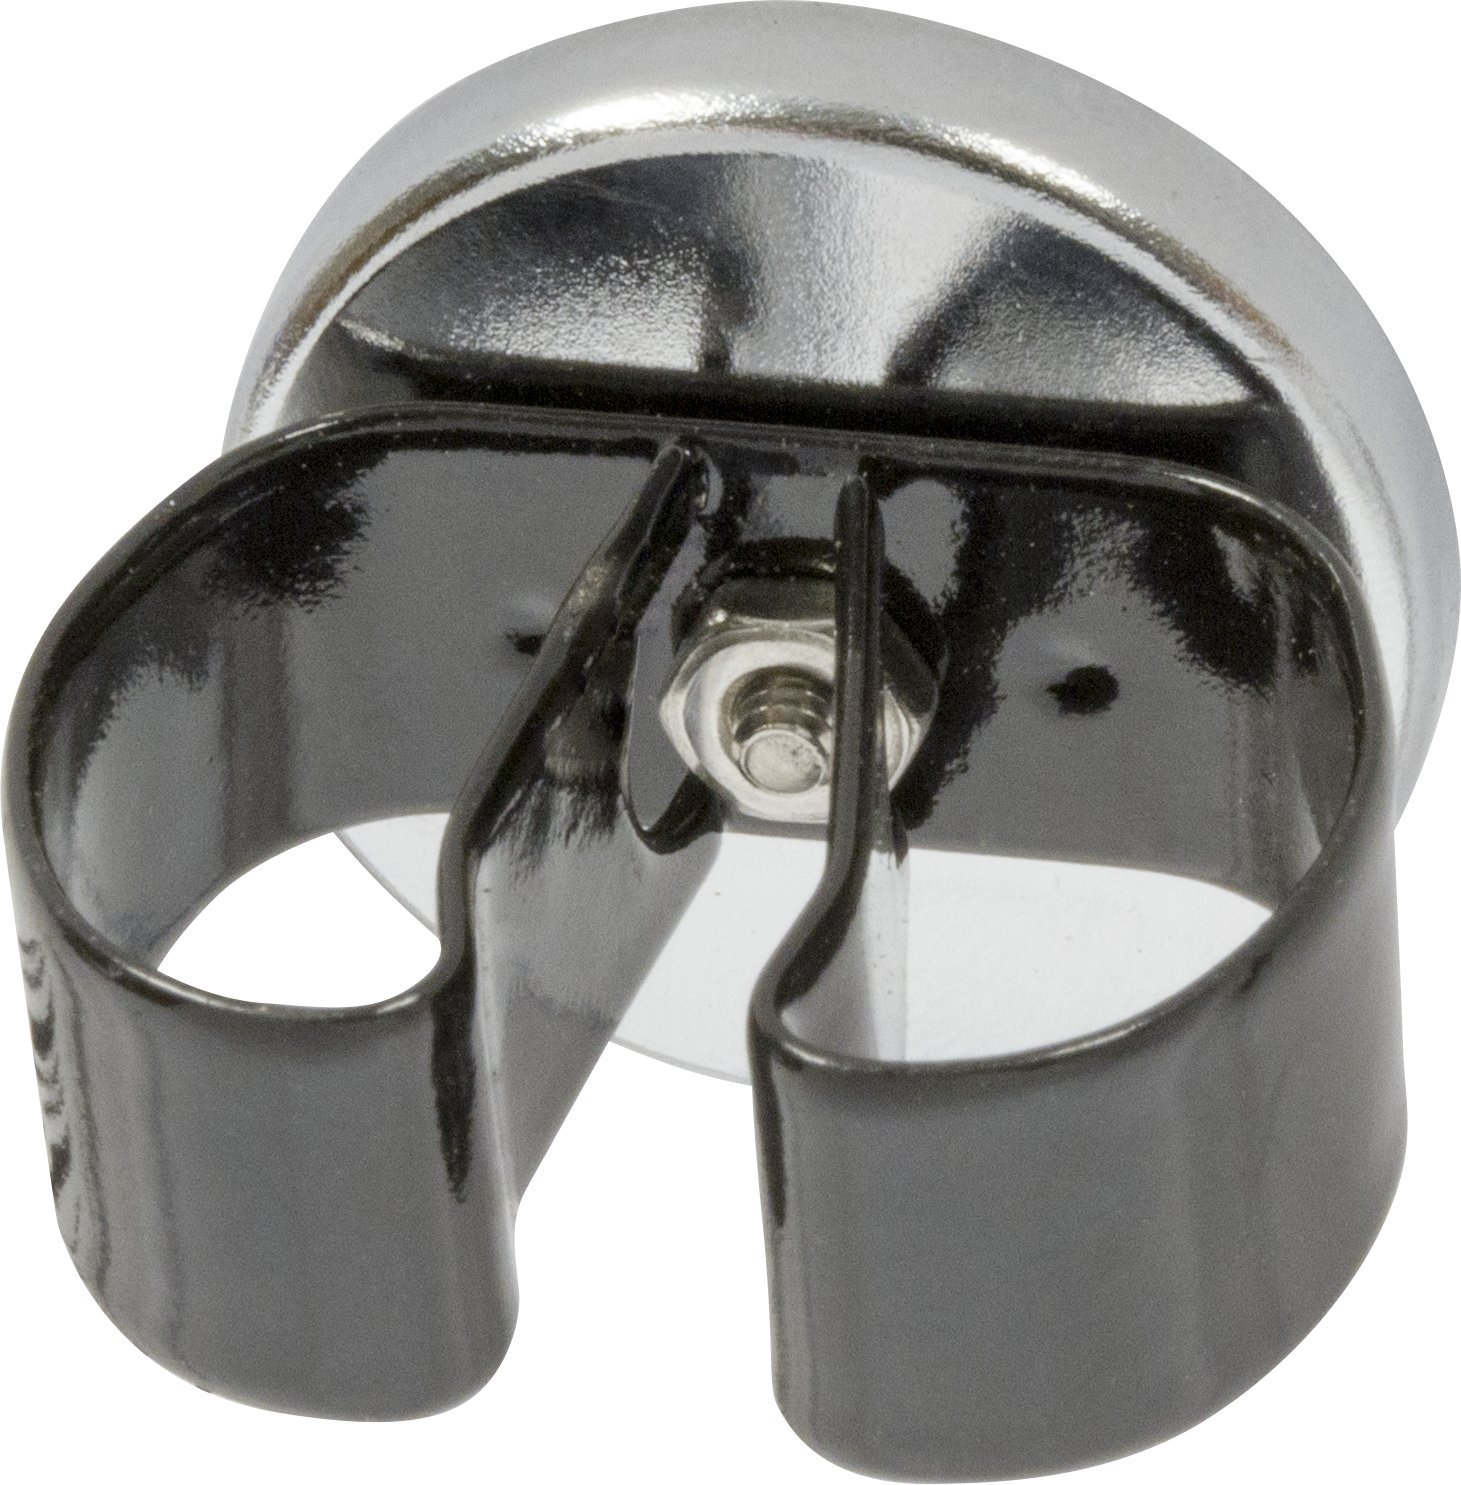 7 lb Industrial Magnetics Inc MAG-MATE MX1000VB01 Cup Magnet with Black Vinyl Spring Clamp